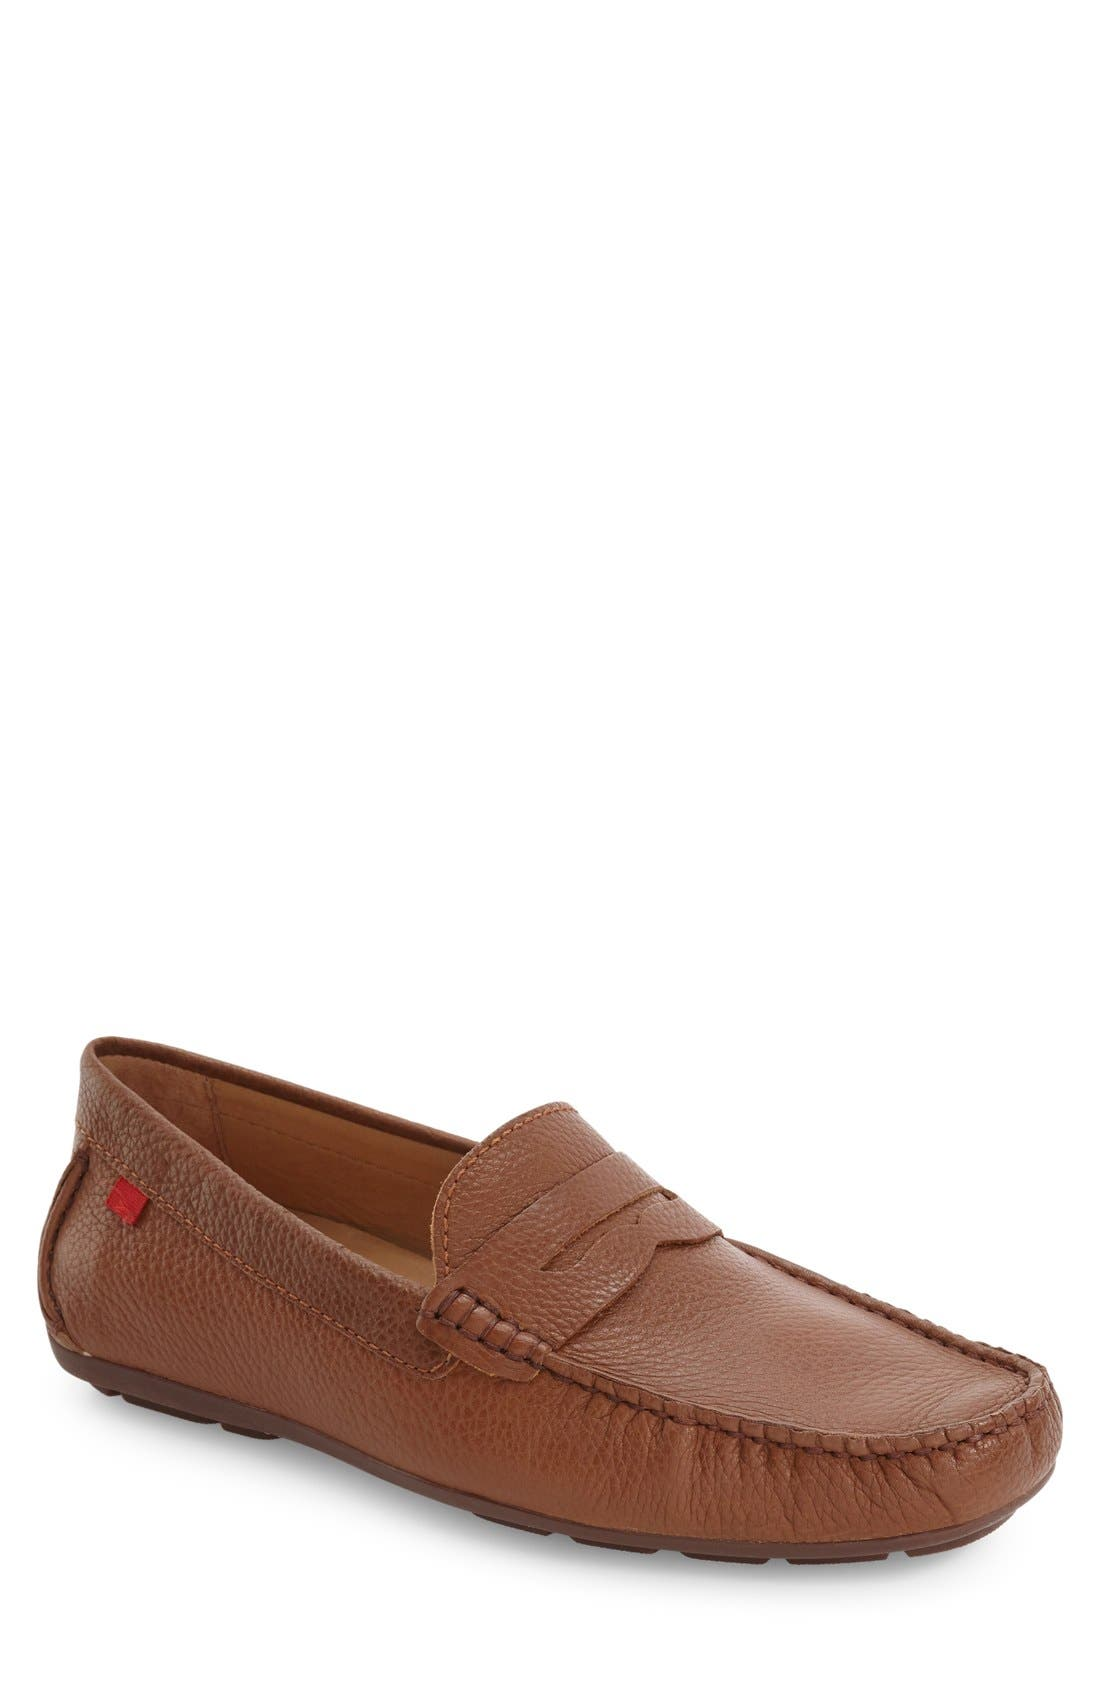 'Union Street' Penny Loafer,                             Main thumbnail 2, color,